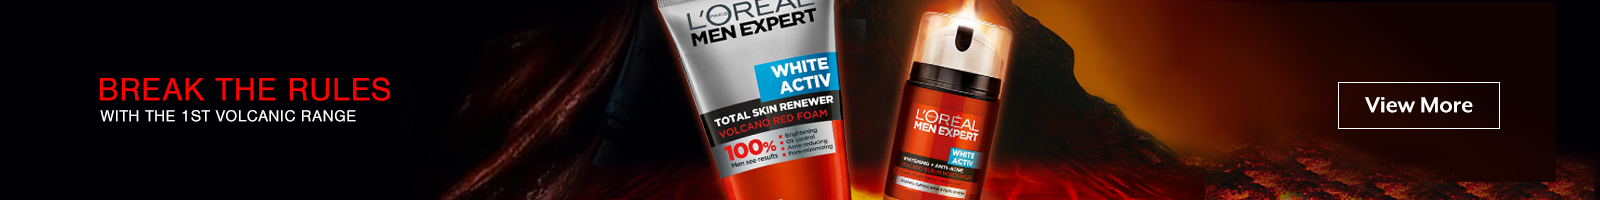 loreal-paris-flagship-zone-banner-men